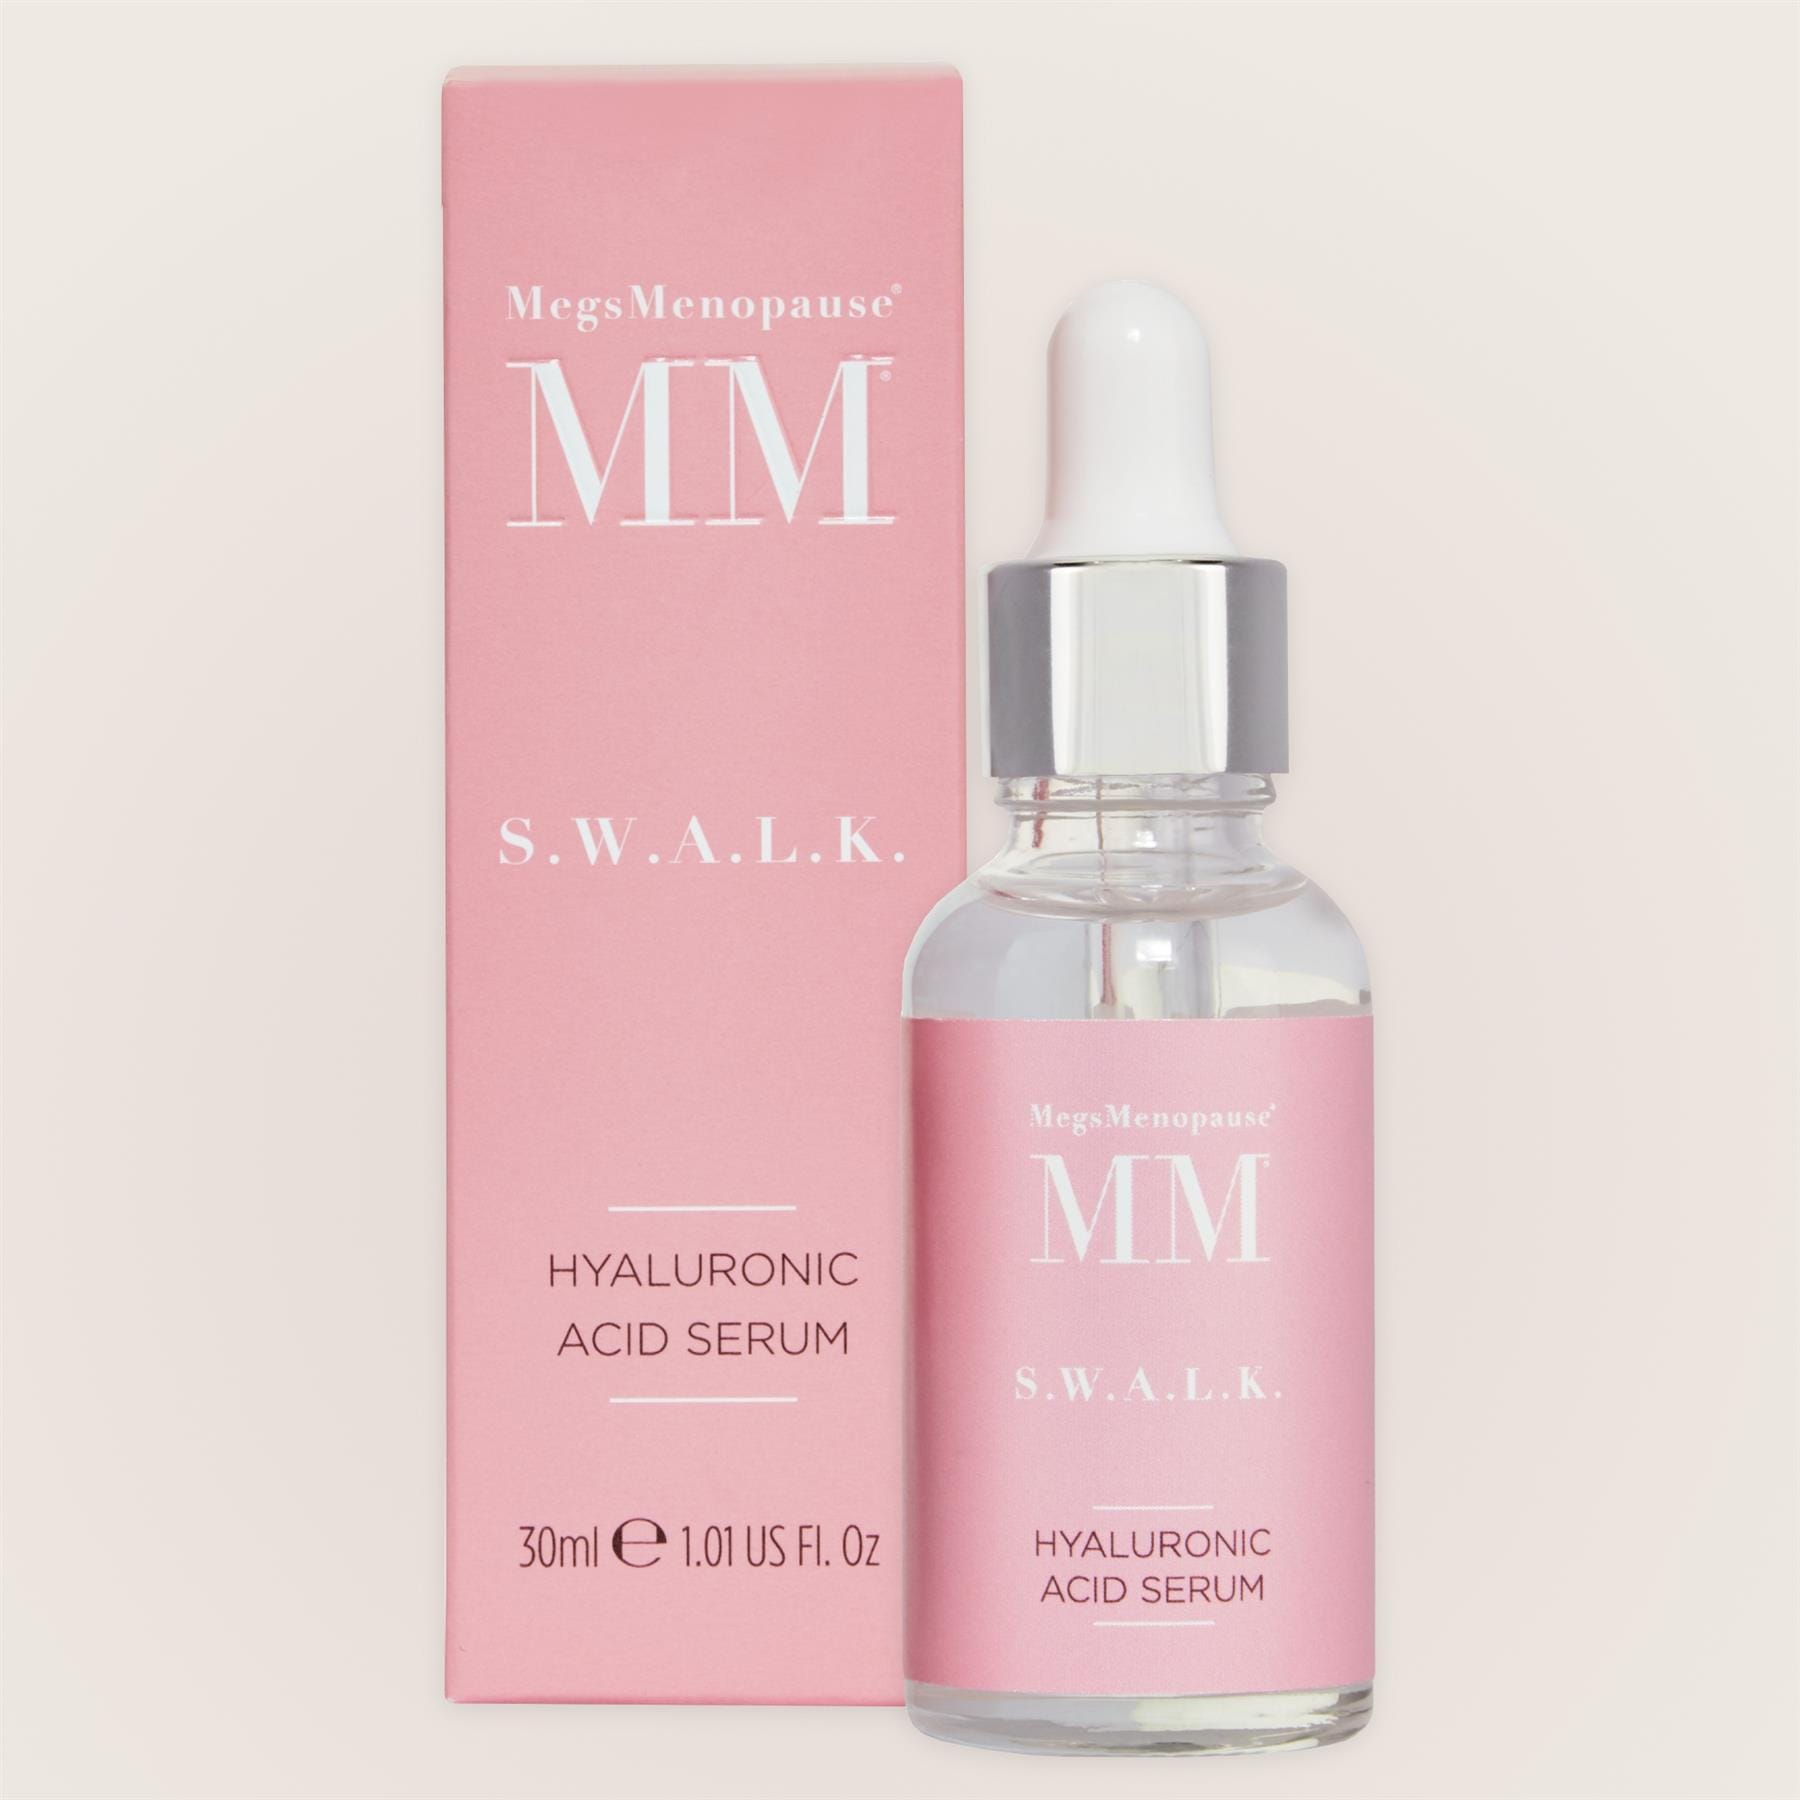 MegsMenopause S.W.A.L.K Hyaluronic Acid Serum 30ml